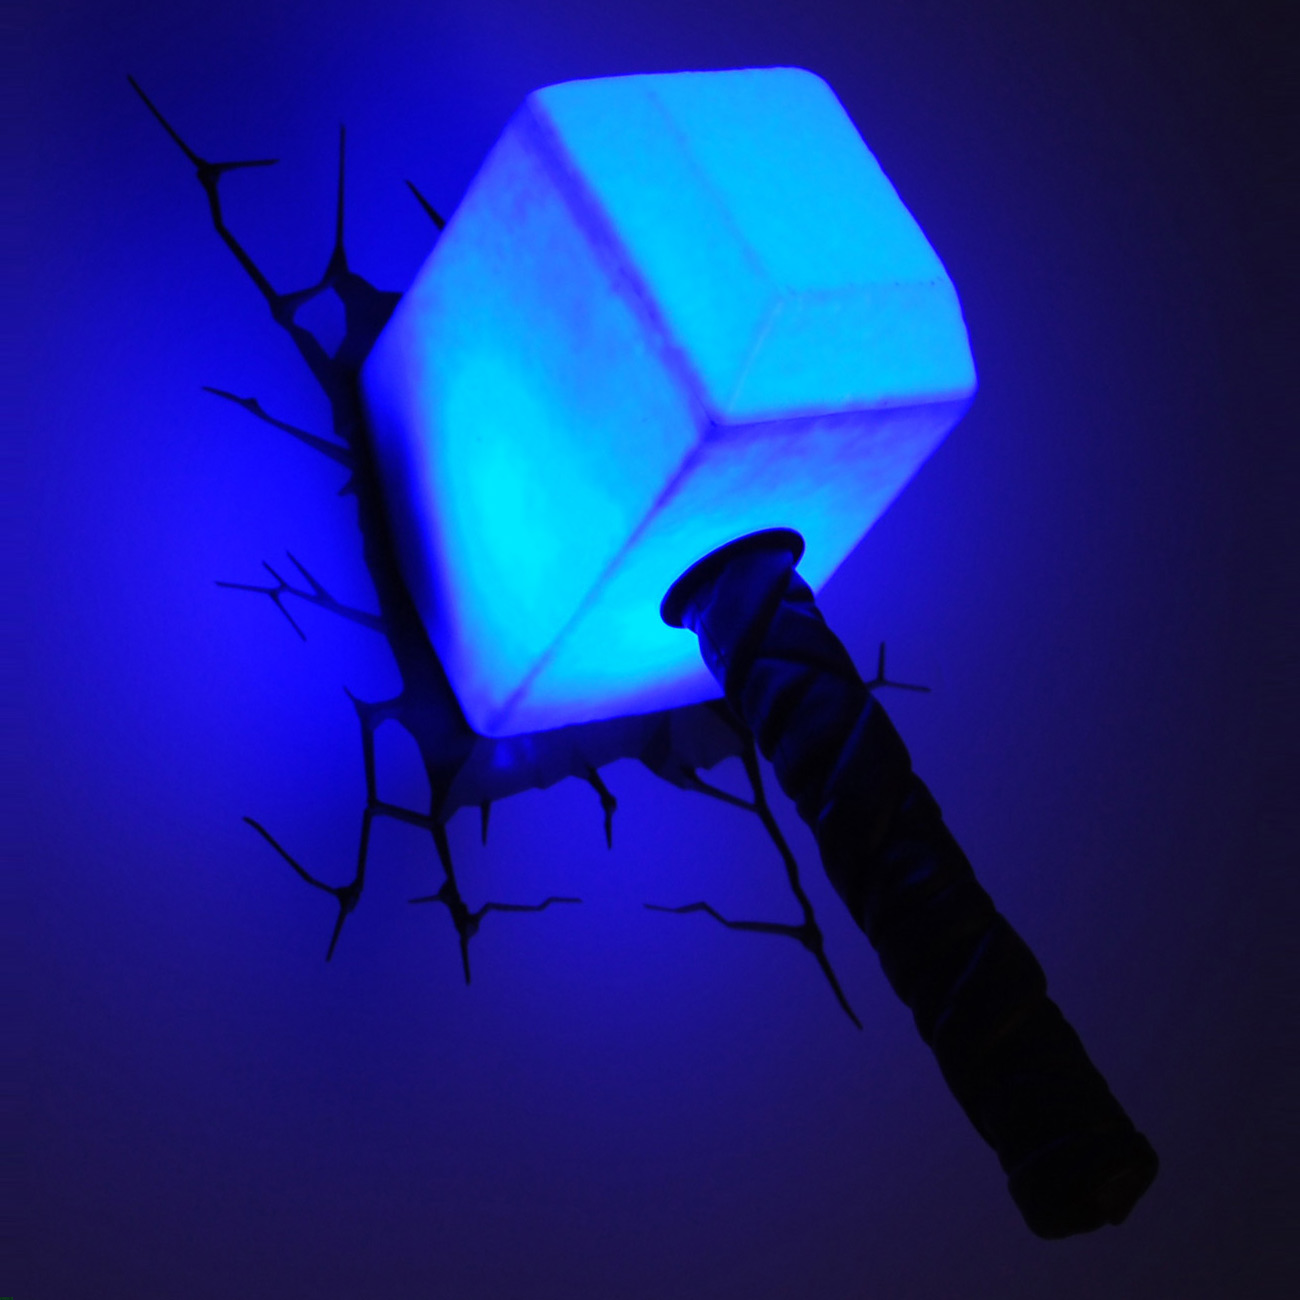 3DLightFX Launches The New Avengers Thor Hammer Collectable 3D Night Light Exclusive to Target ...